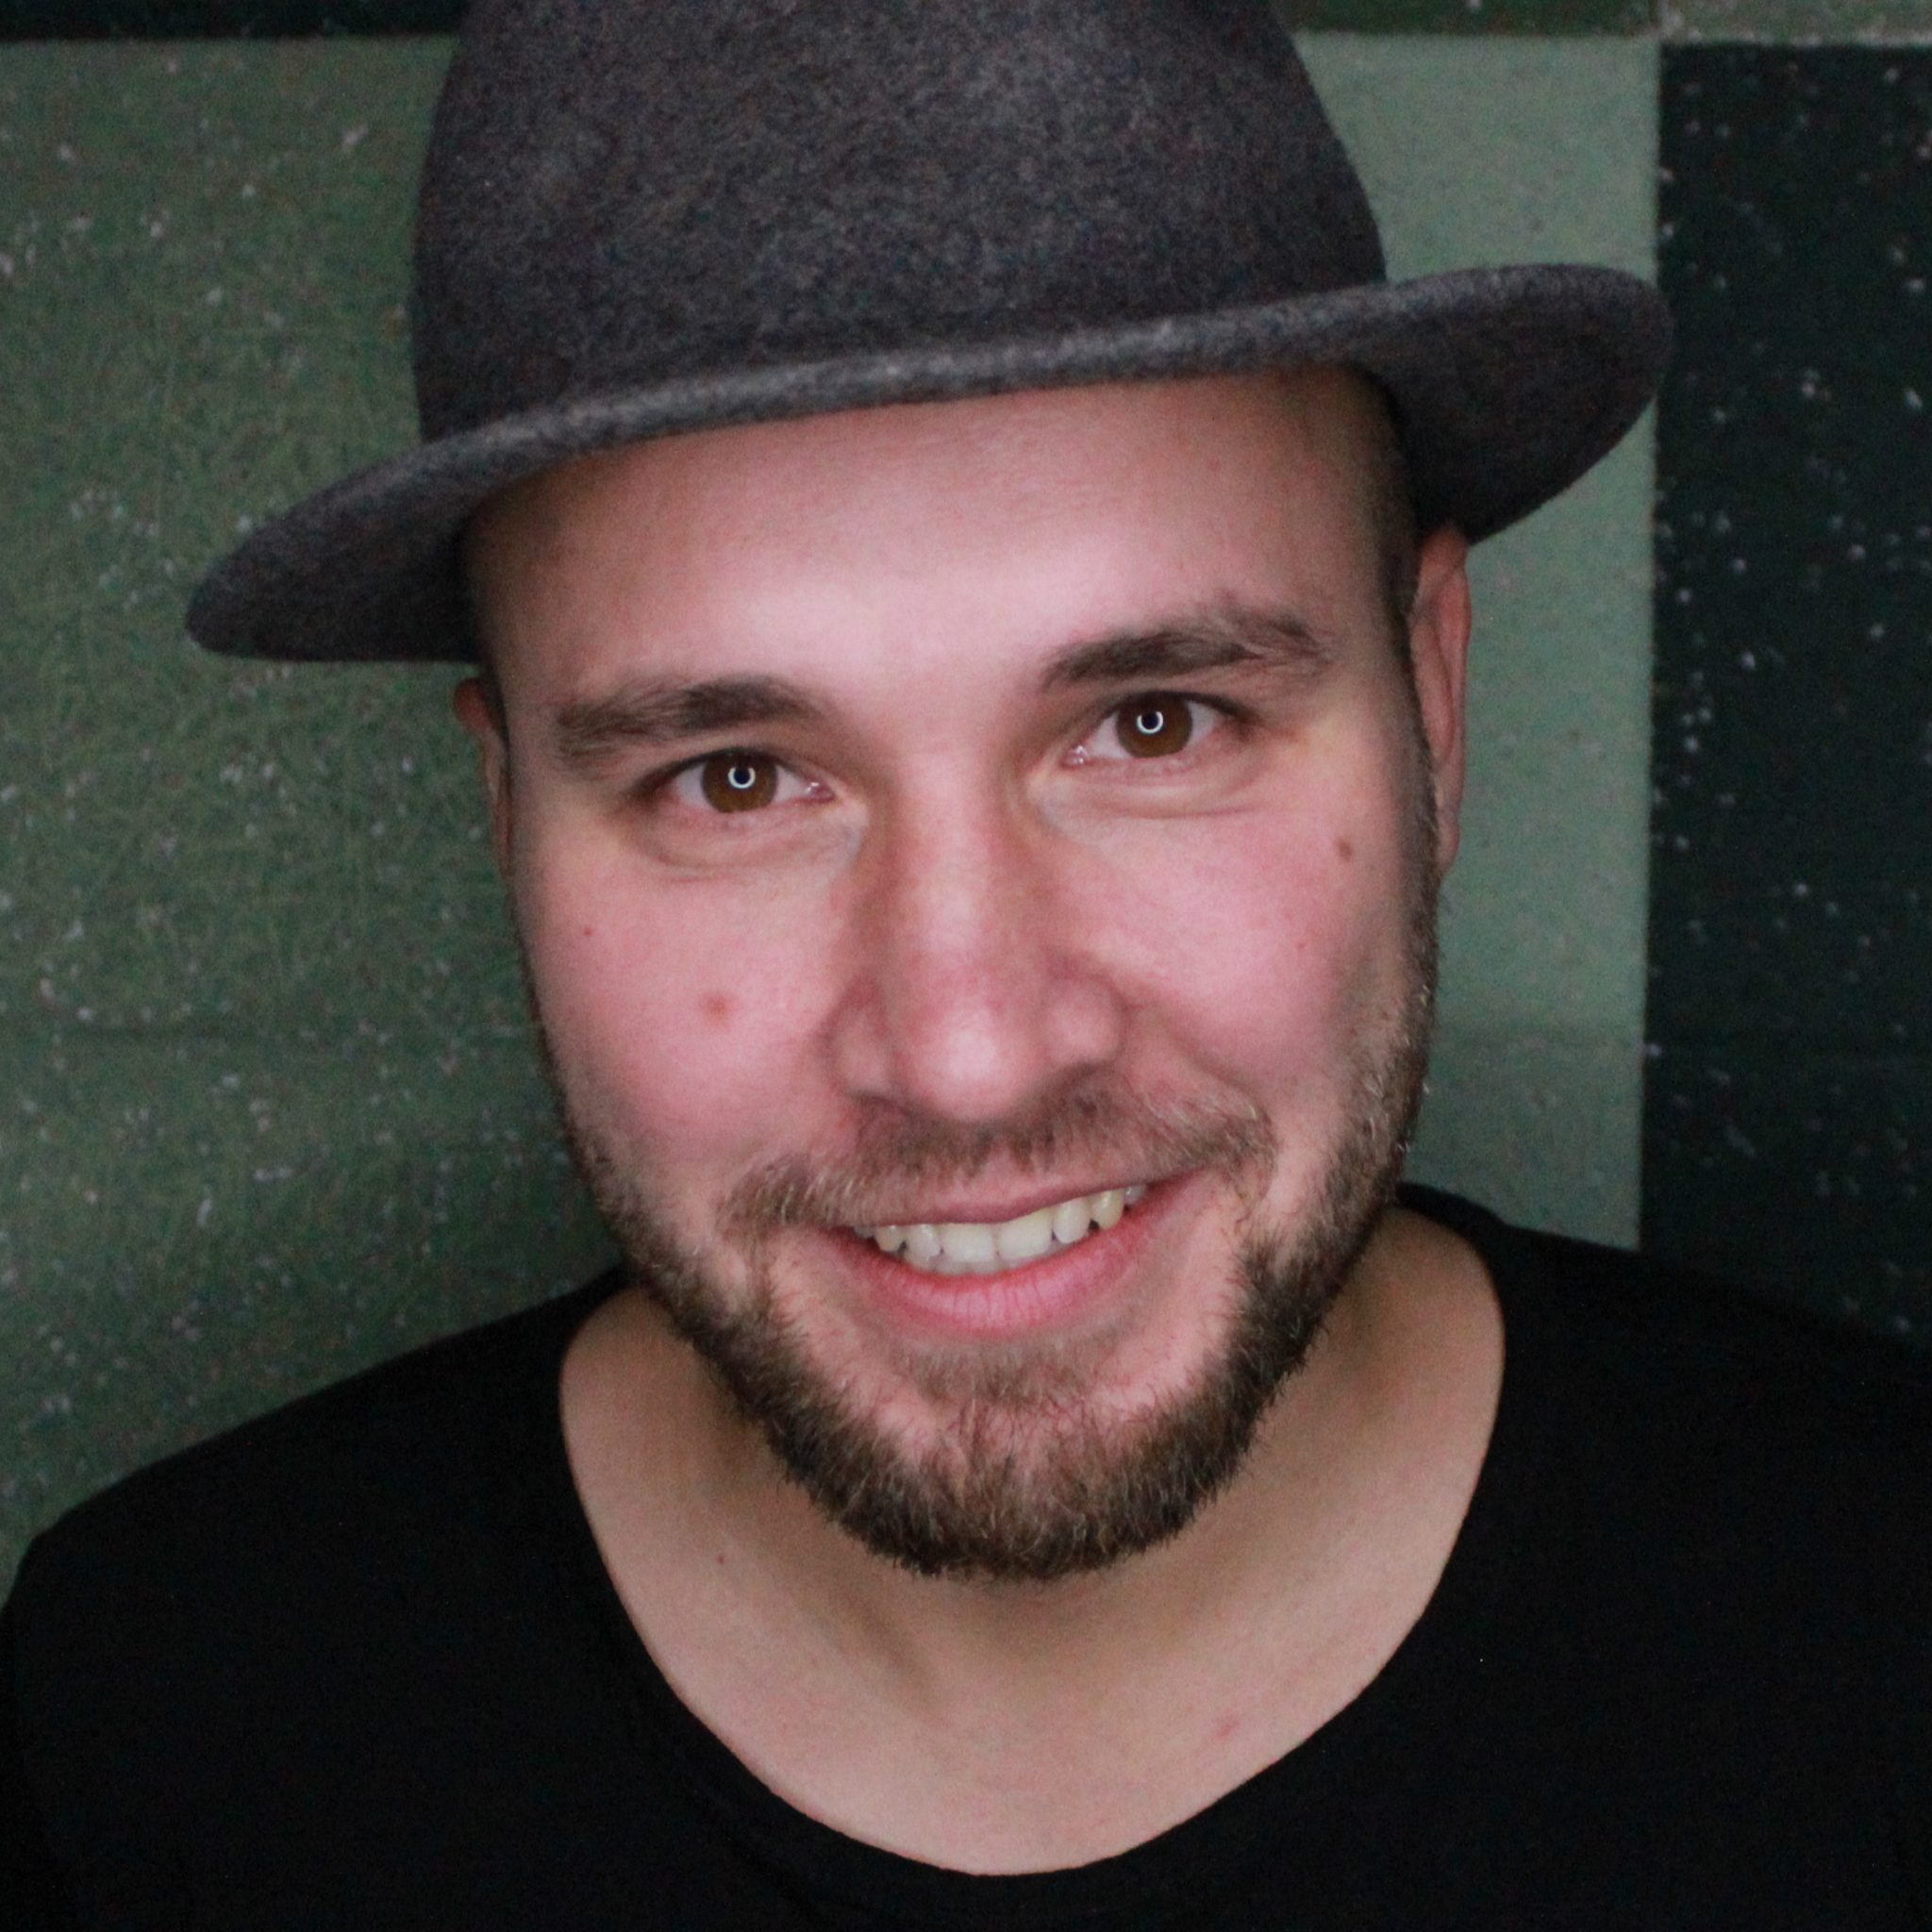 Marco Timm